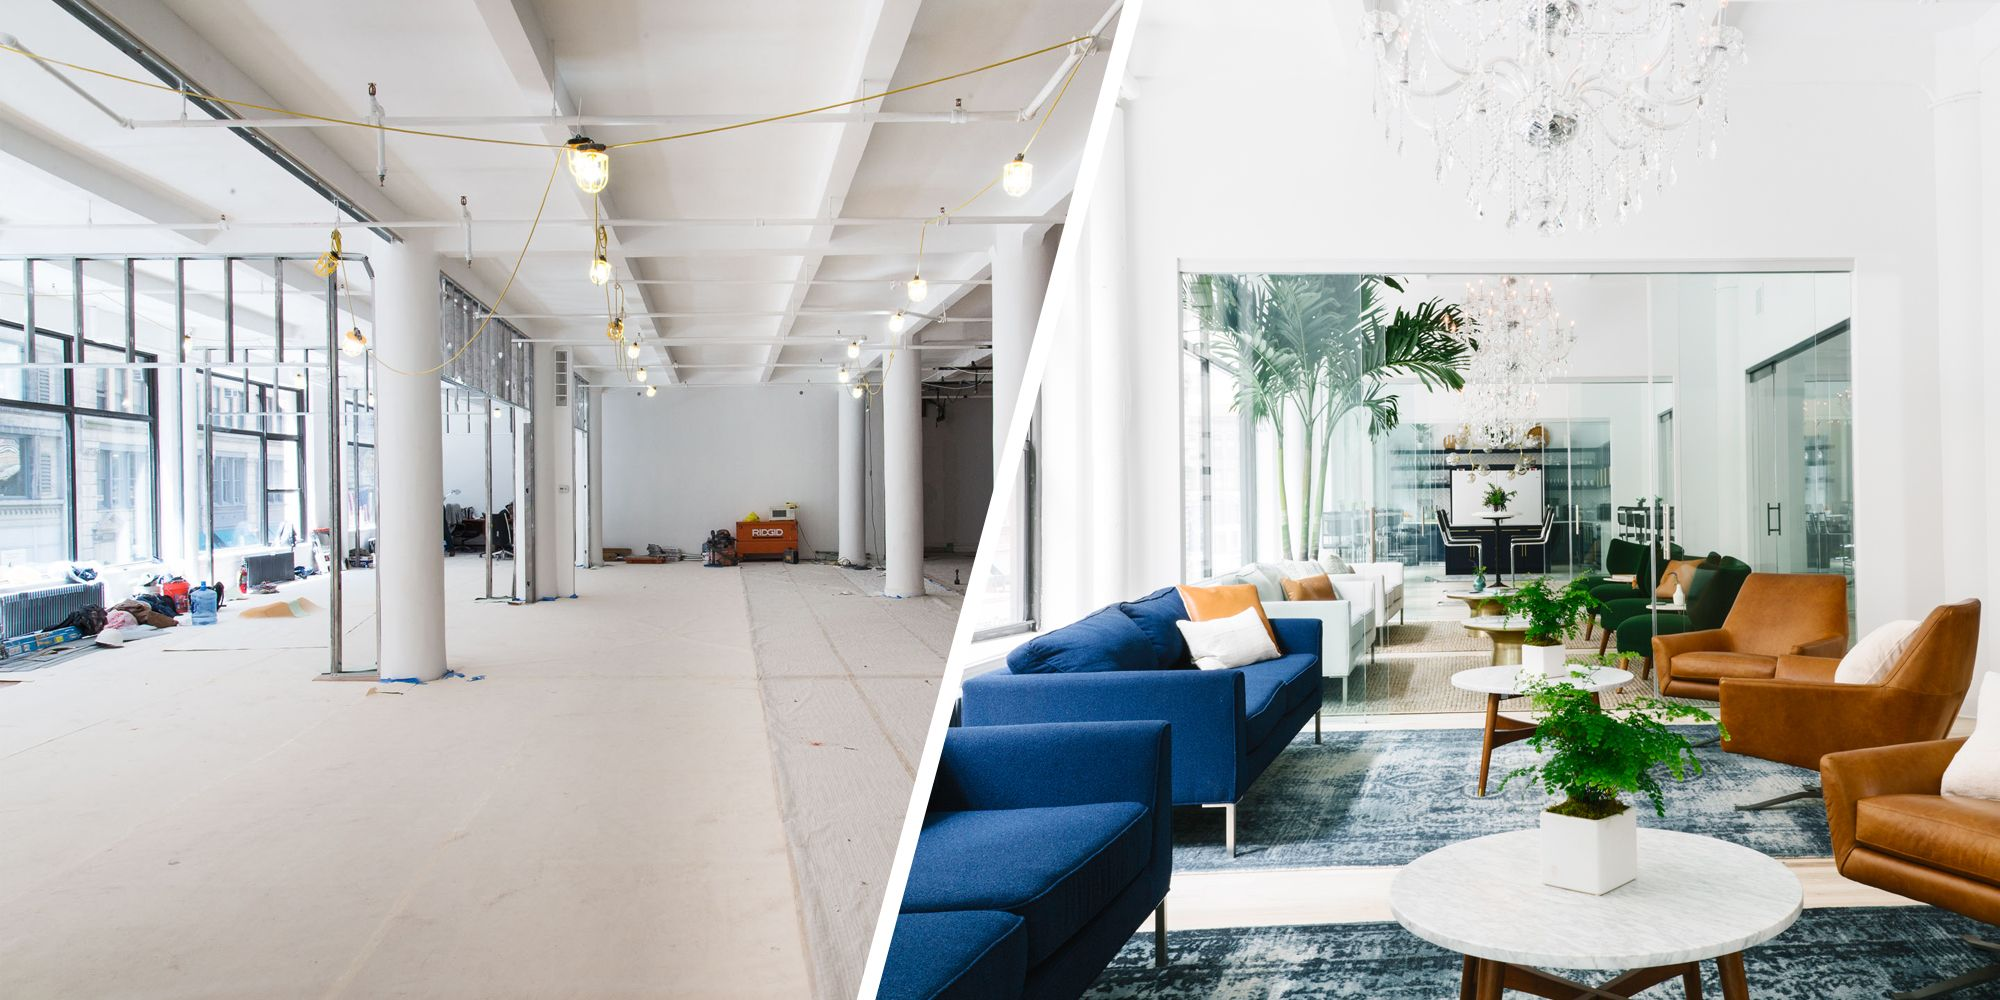 Before + After: Homepolish Gives Its New Office Space A Sleek And Cozy Look